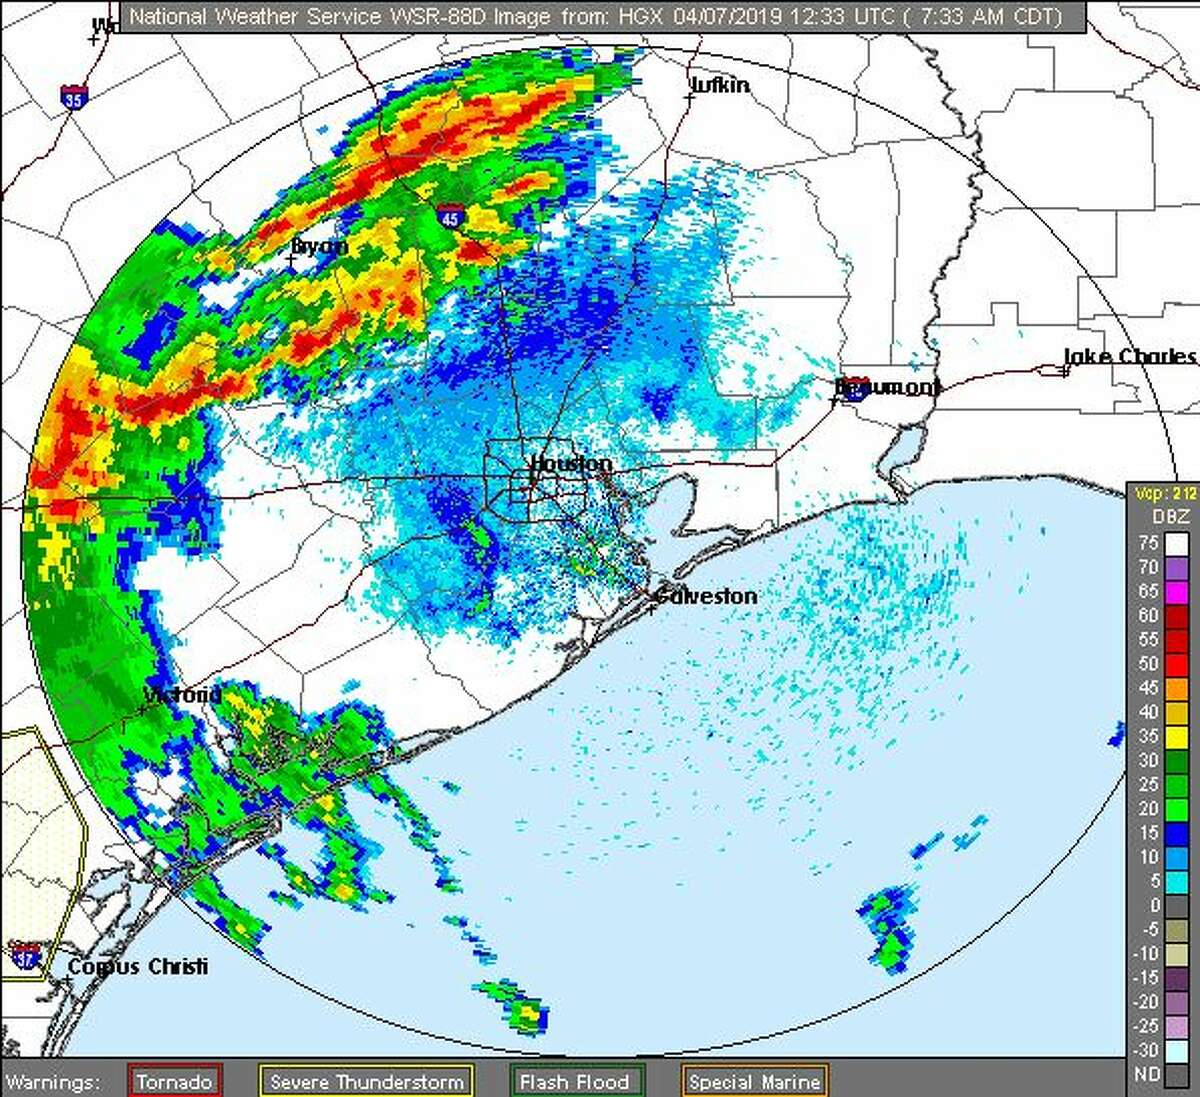 Severe thunderstorm watch issued for Houston until 3 p.m.